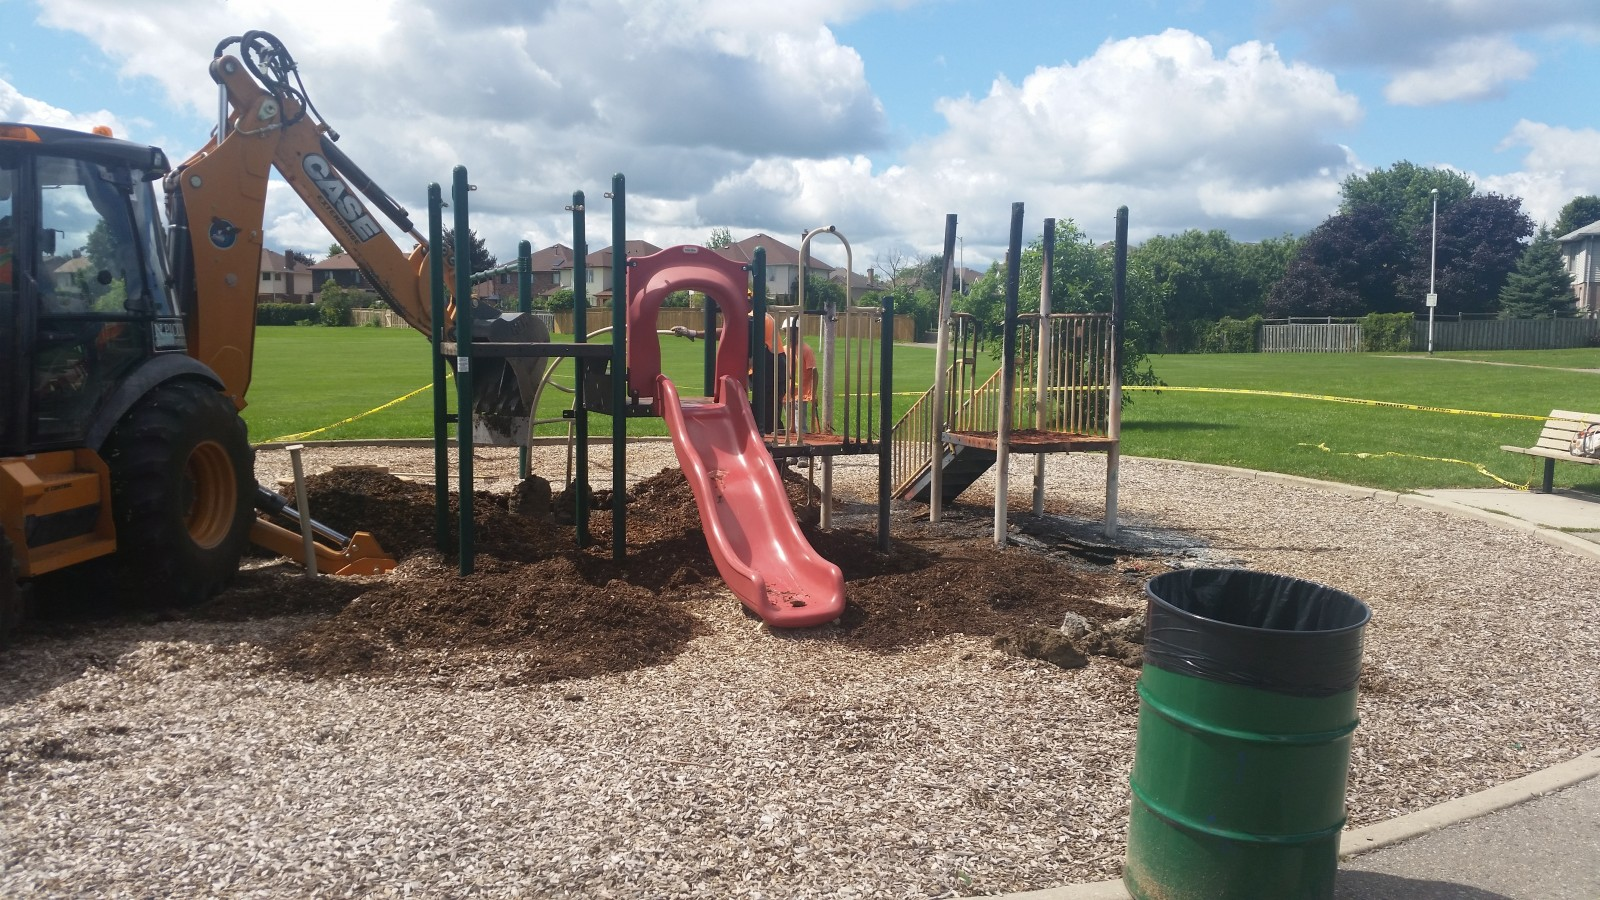 City cleans up burnt playset